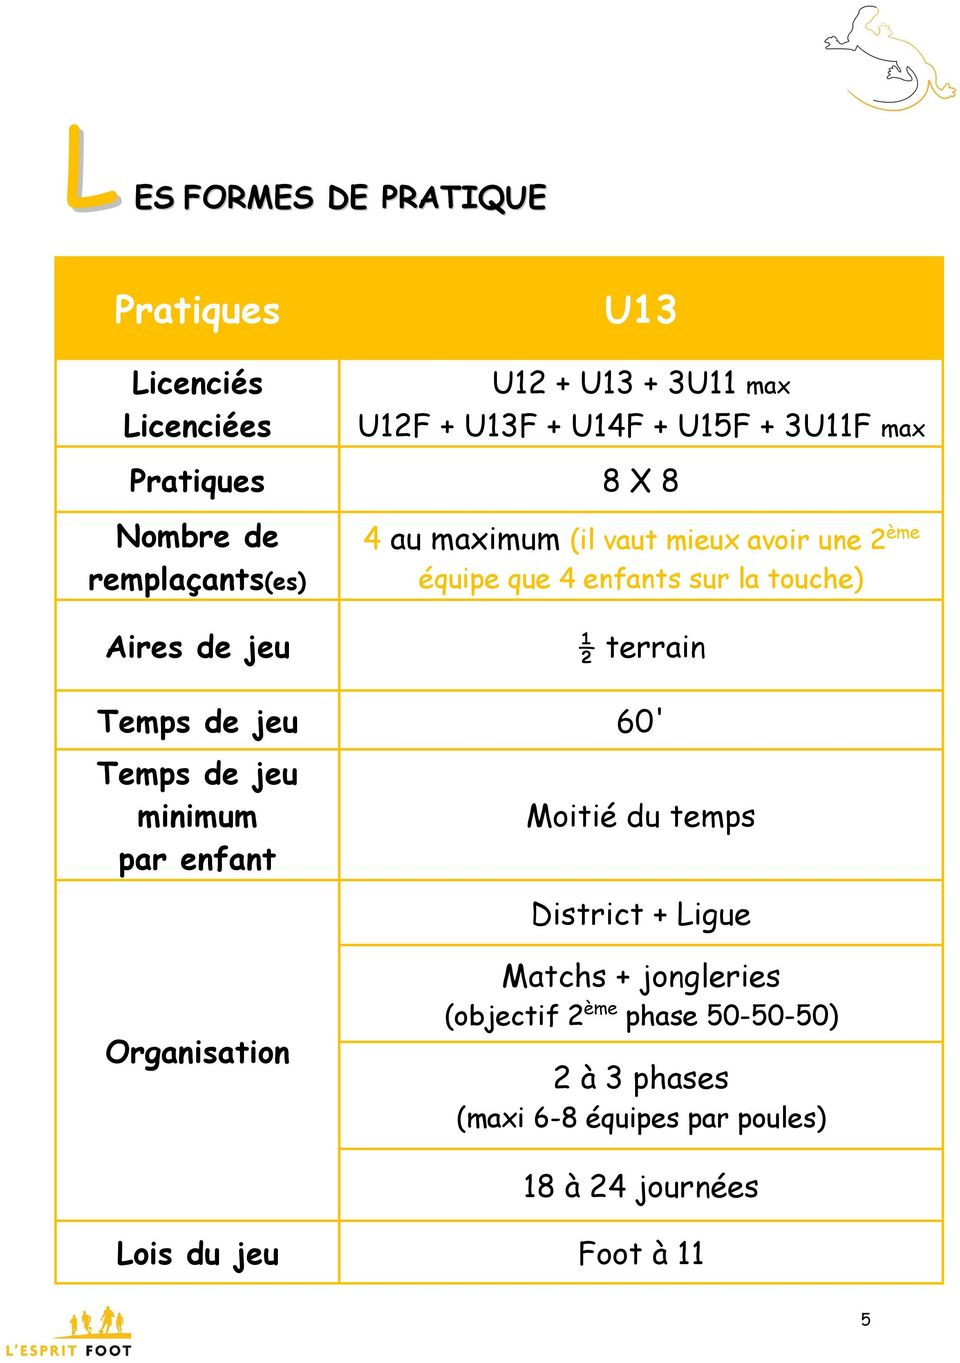 Aires de jeu ½ terrain Temps de jeu 60' Temps de jeu minimum par enfant Moitié du temps District + Ligue Organisation